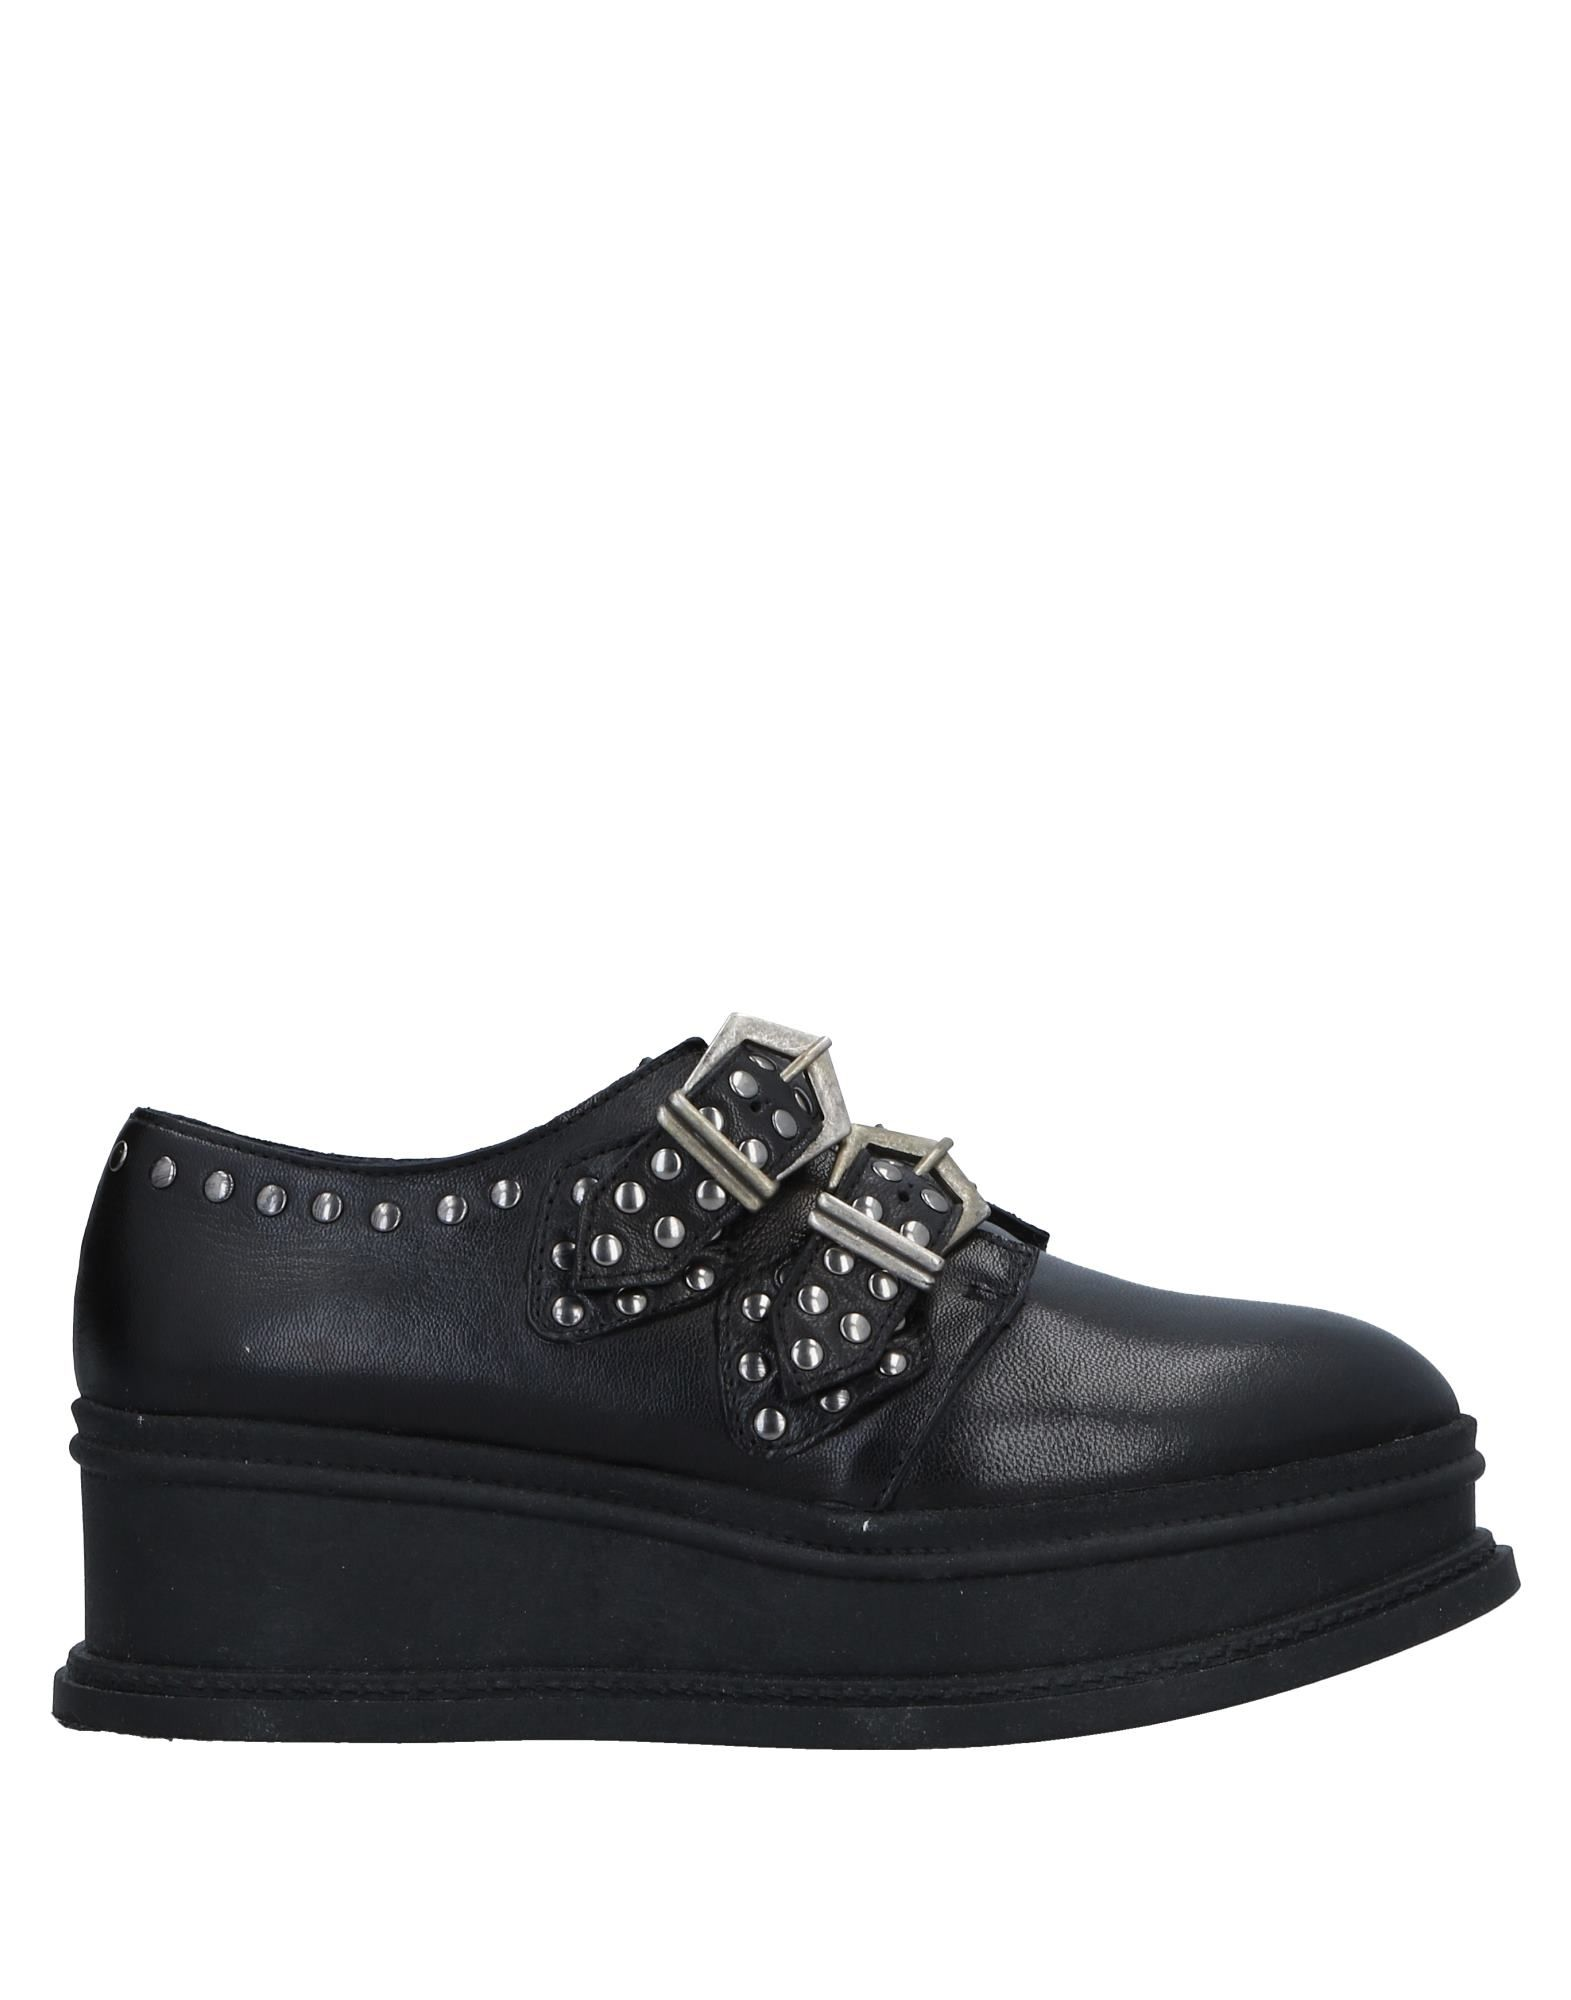 Moda Sneakers - Unlace Donna - Sneakers 11521320QL 77bf1b